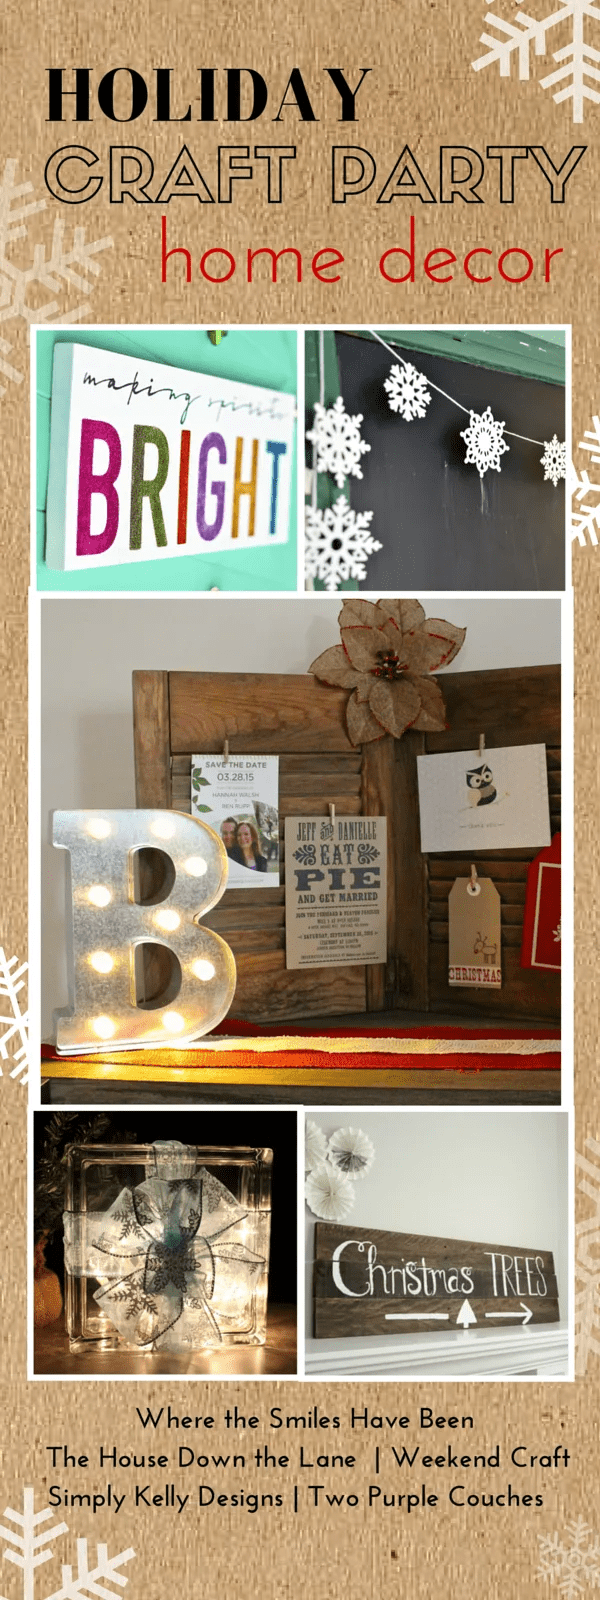 Holiday Craft Party! Day 5: Home Decor, plus an AMAZING Giveaway! | Where The Smiles Have Been